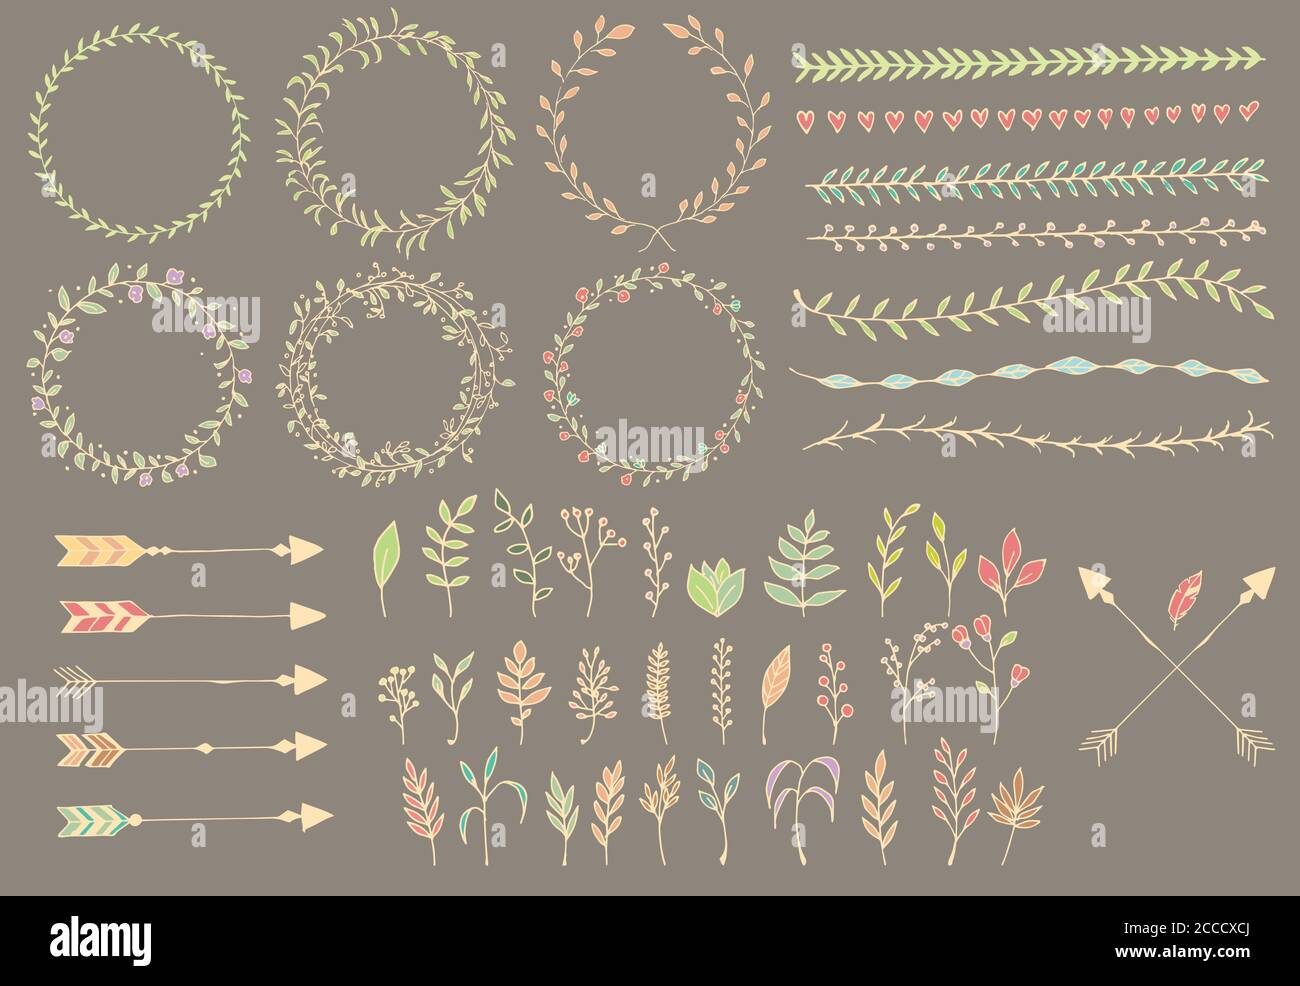 Hand Drawn Vintage Arrows Feathers Dividers And Floral Elements Vector Illustration Stock Vector Image Art Alamy